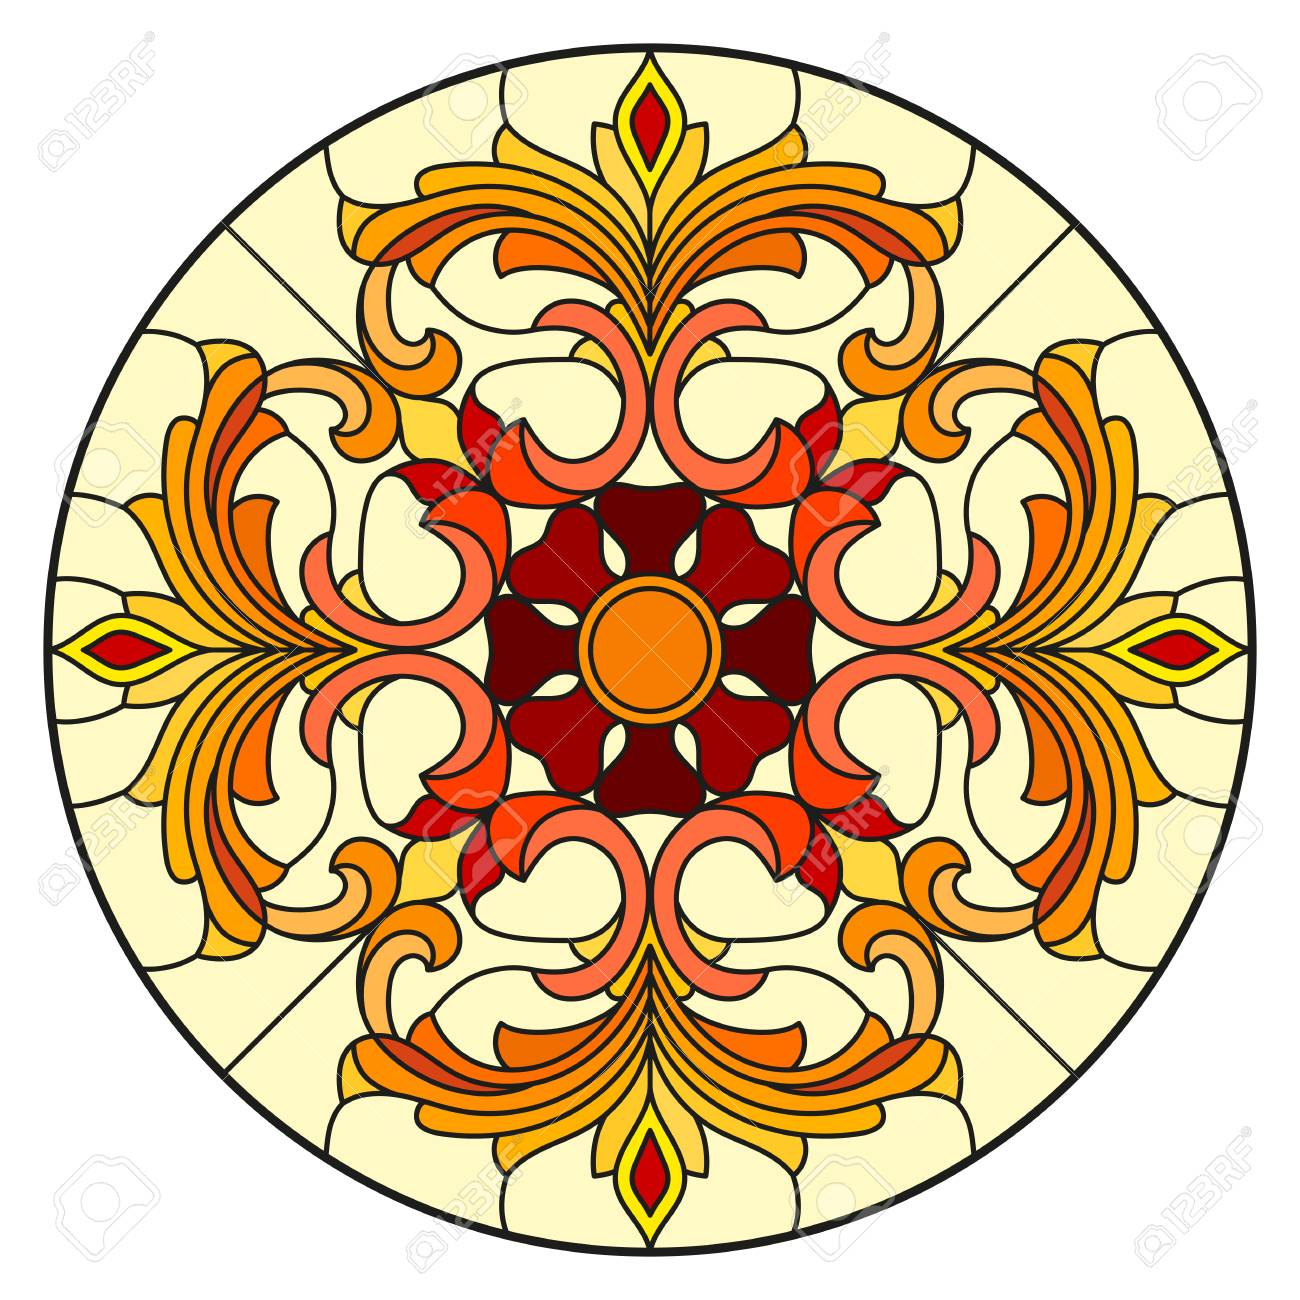 Illustration in stained glass style with abstract flowers, leaves and swirls, circular image on white background - 97576040